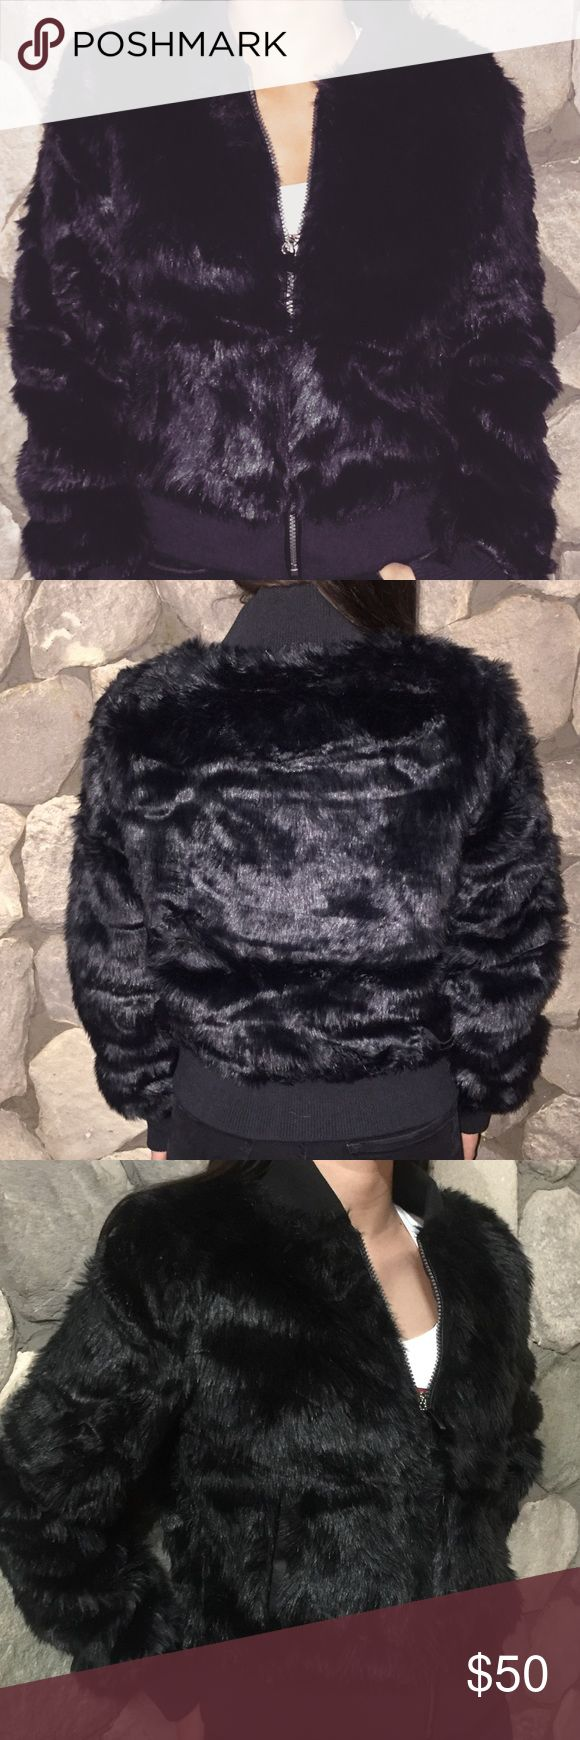 Black faux fur jacket Make a statement with this beautiful black faux fur jacket. Please use the offer tool. No trades. Jackets & Coats